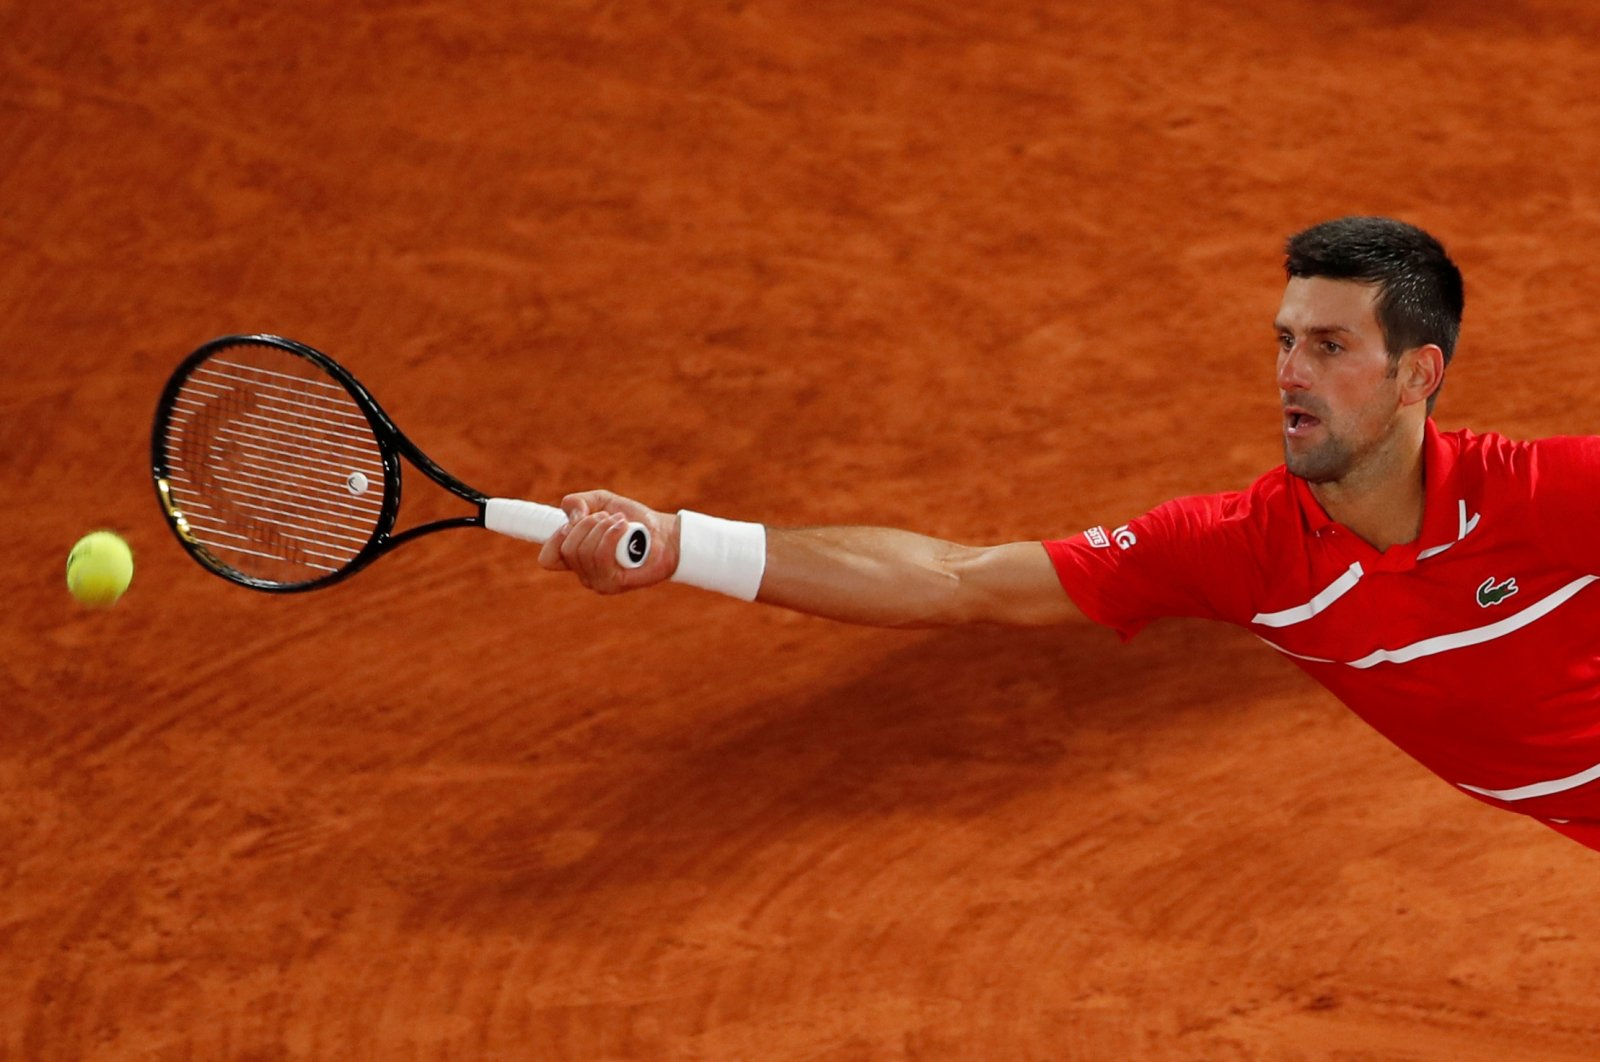 Novak Djokovic in action during a French Open match against Karen Khachanov, in Paris, France, Oct. 5, 2020. (Reuters Photo)